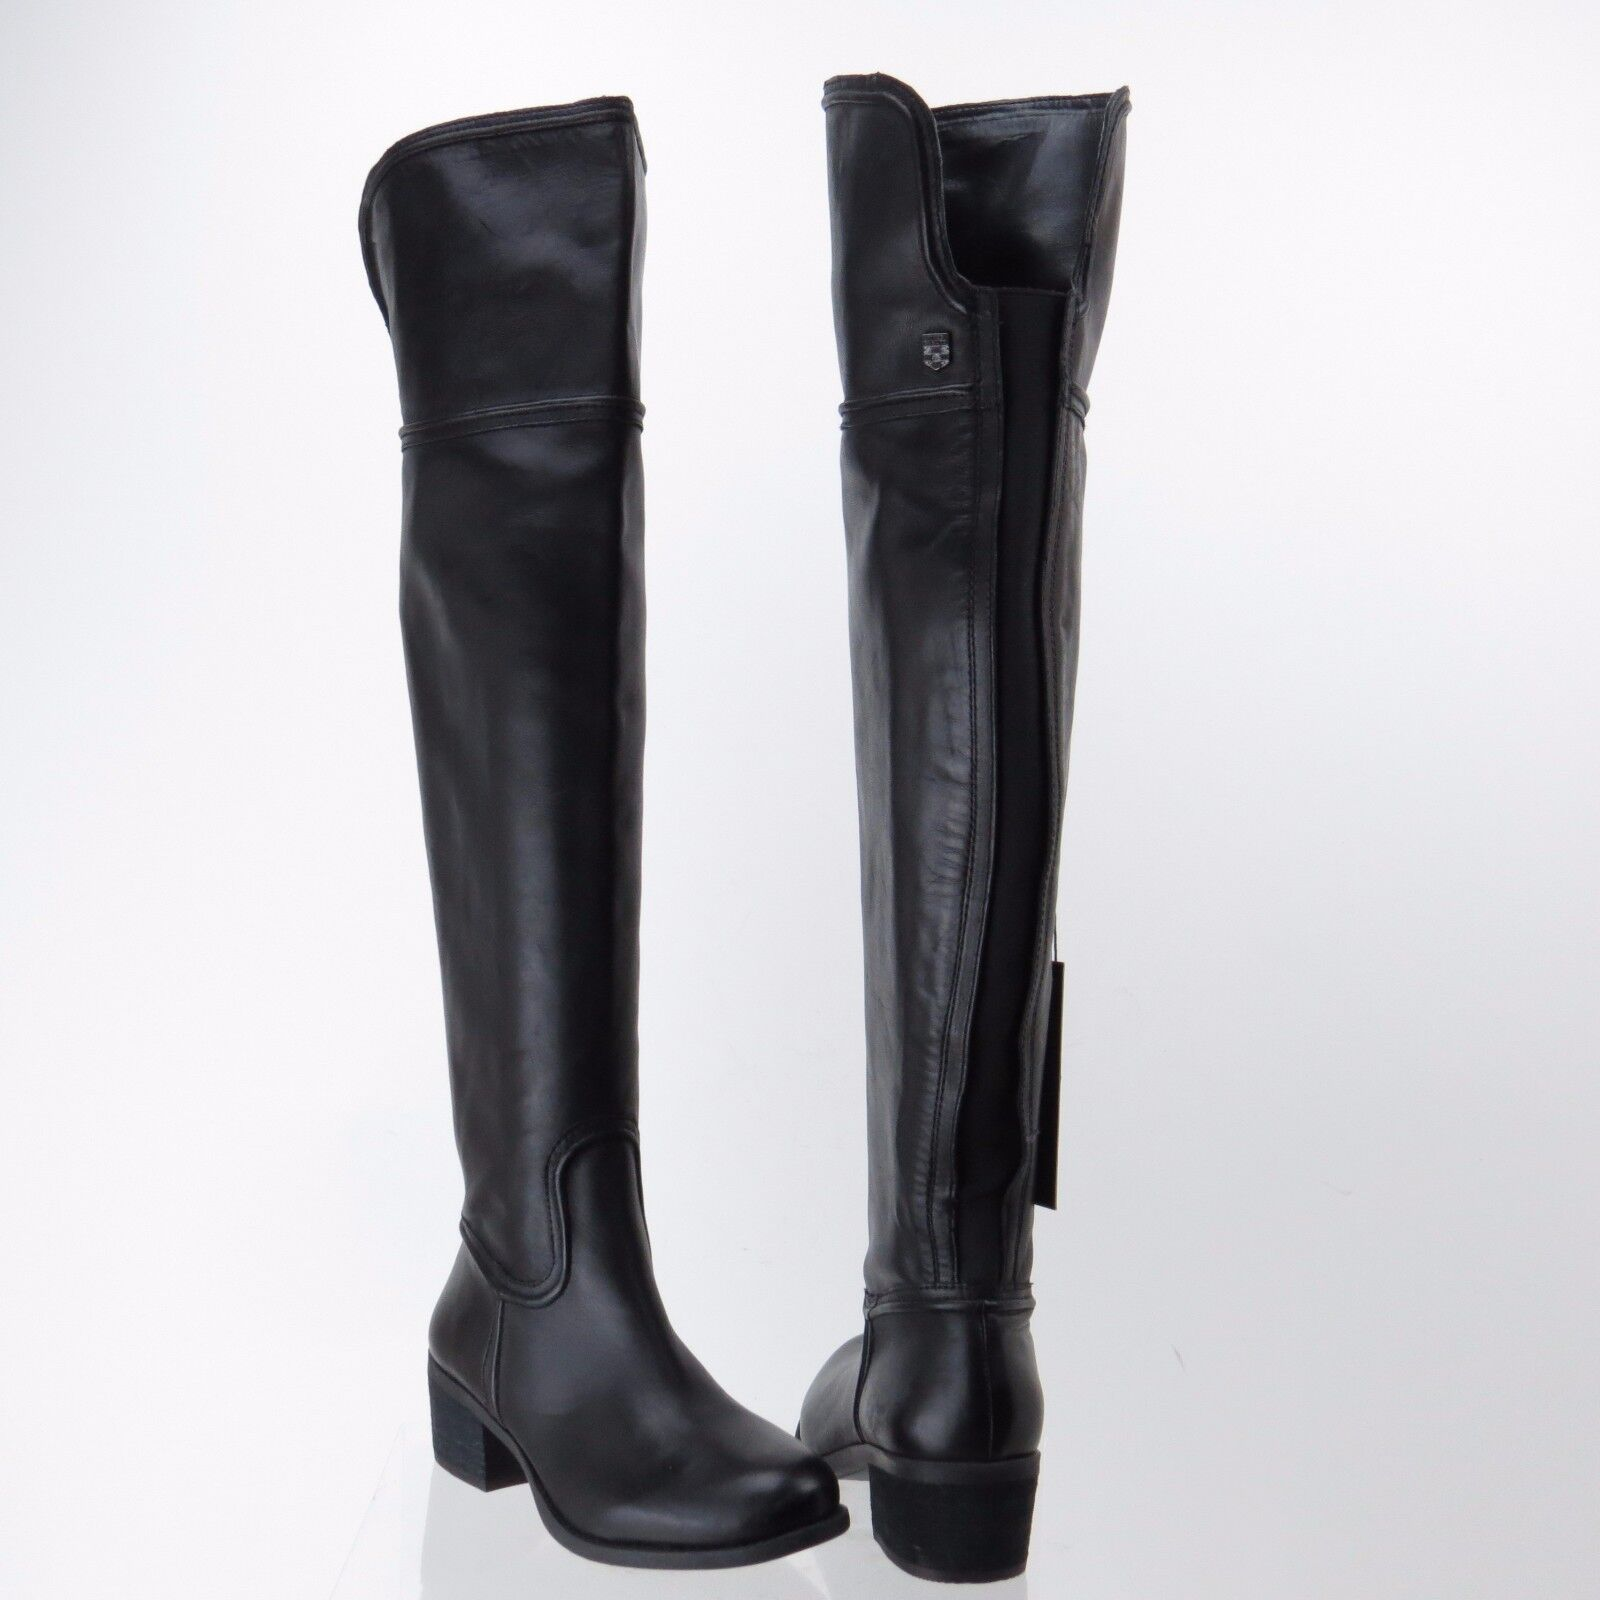 Women's Vince Camuto Baldwin 2 Black Leather Leather Leather Tall Knee Wide Calf Boot Sz 6 M NEW 6e9de6